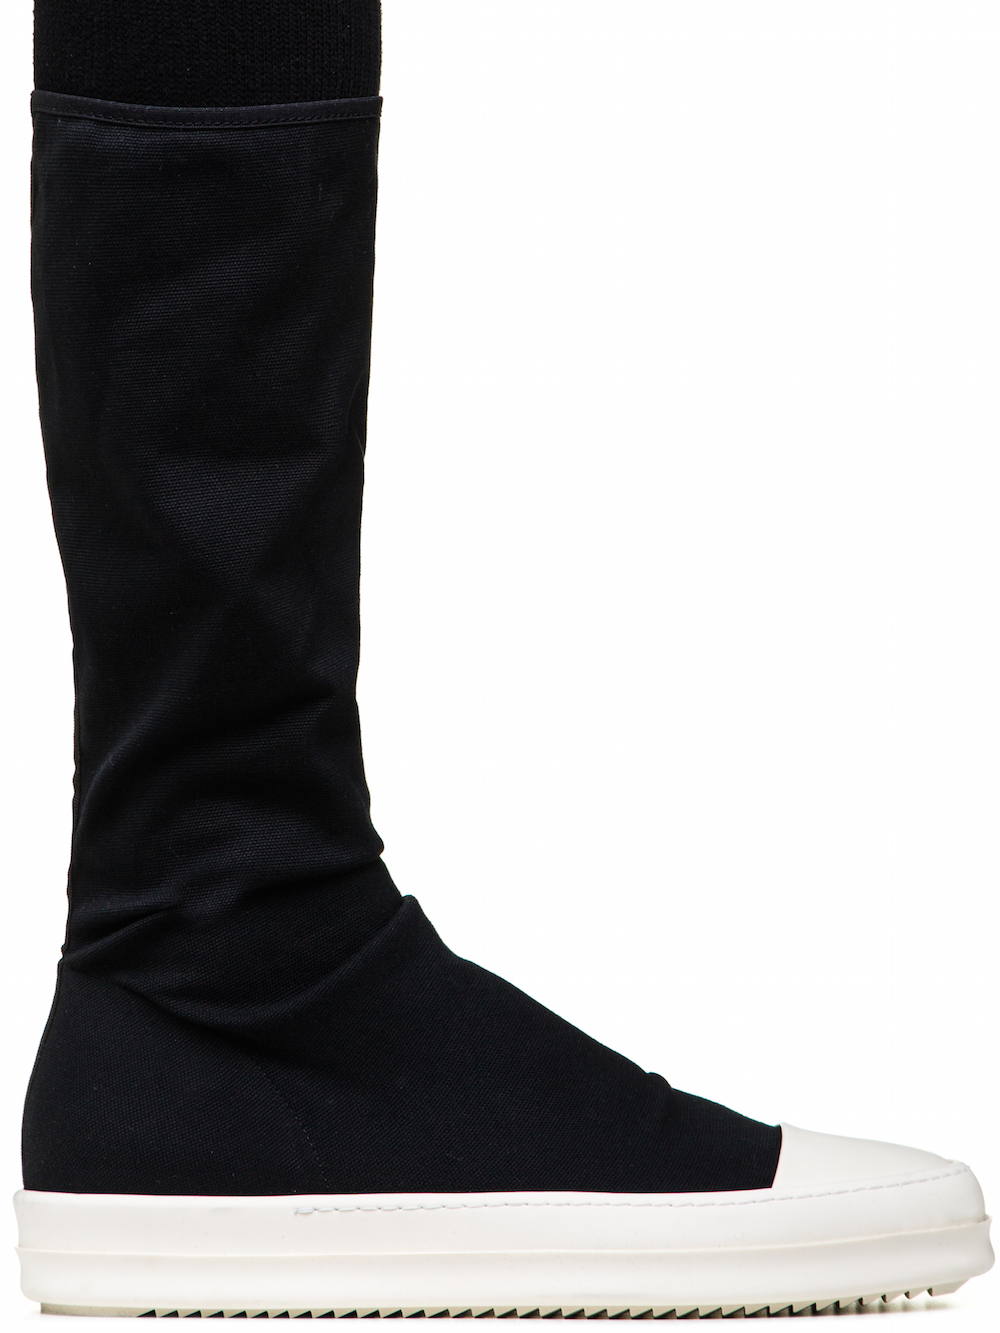 sock sneaker boots - Black Rick Owens For Sale Cheap Price Best Choice am3NxqXe